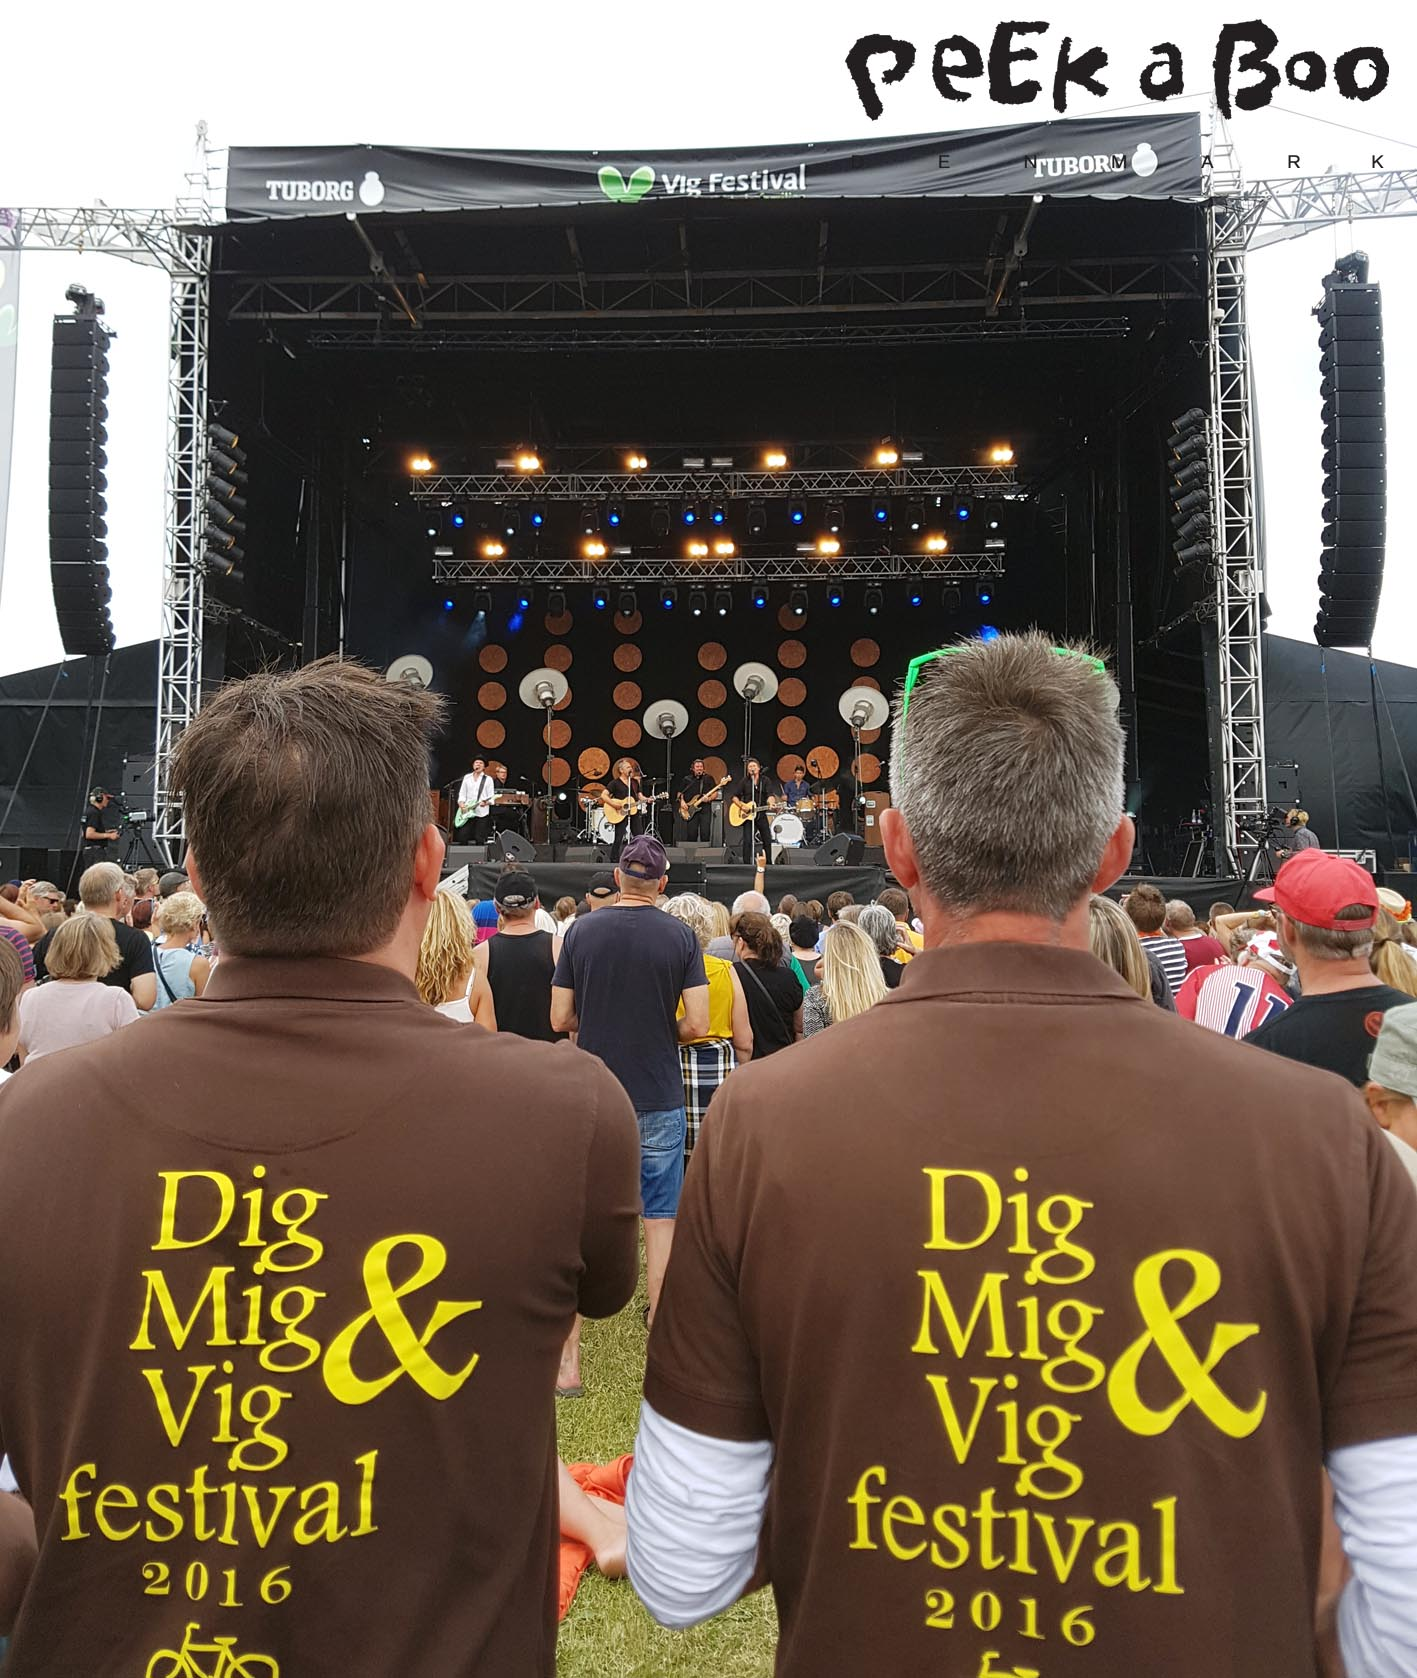 The Good vibes at Vig Festival 2016.